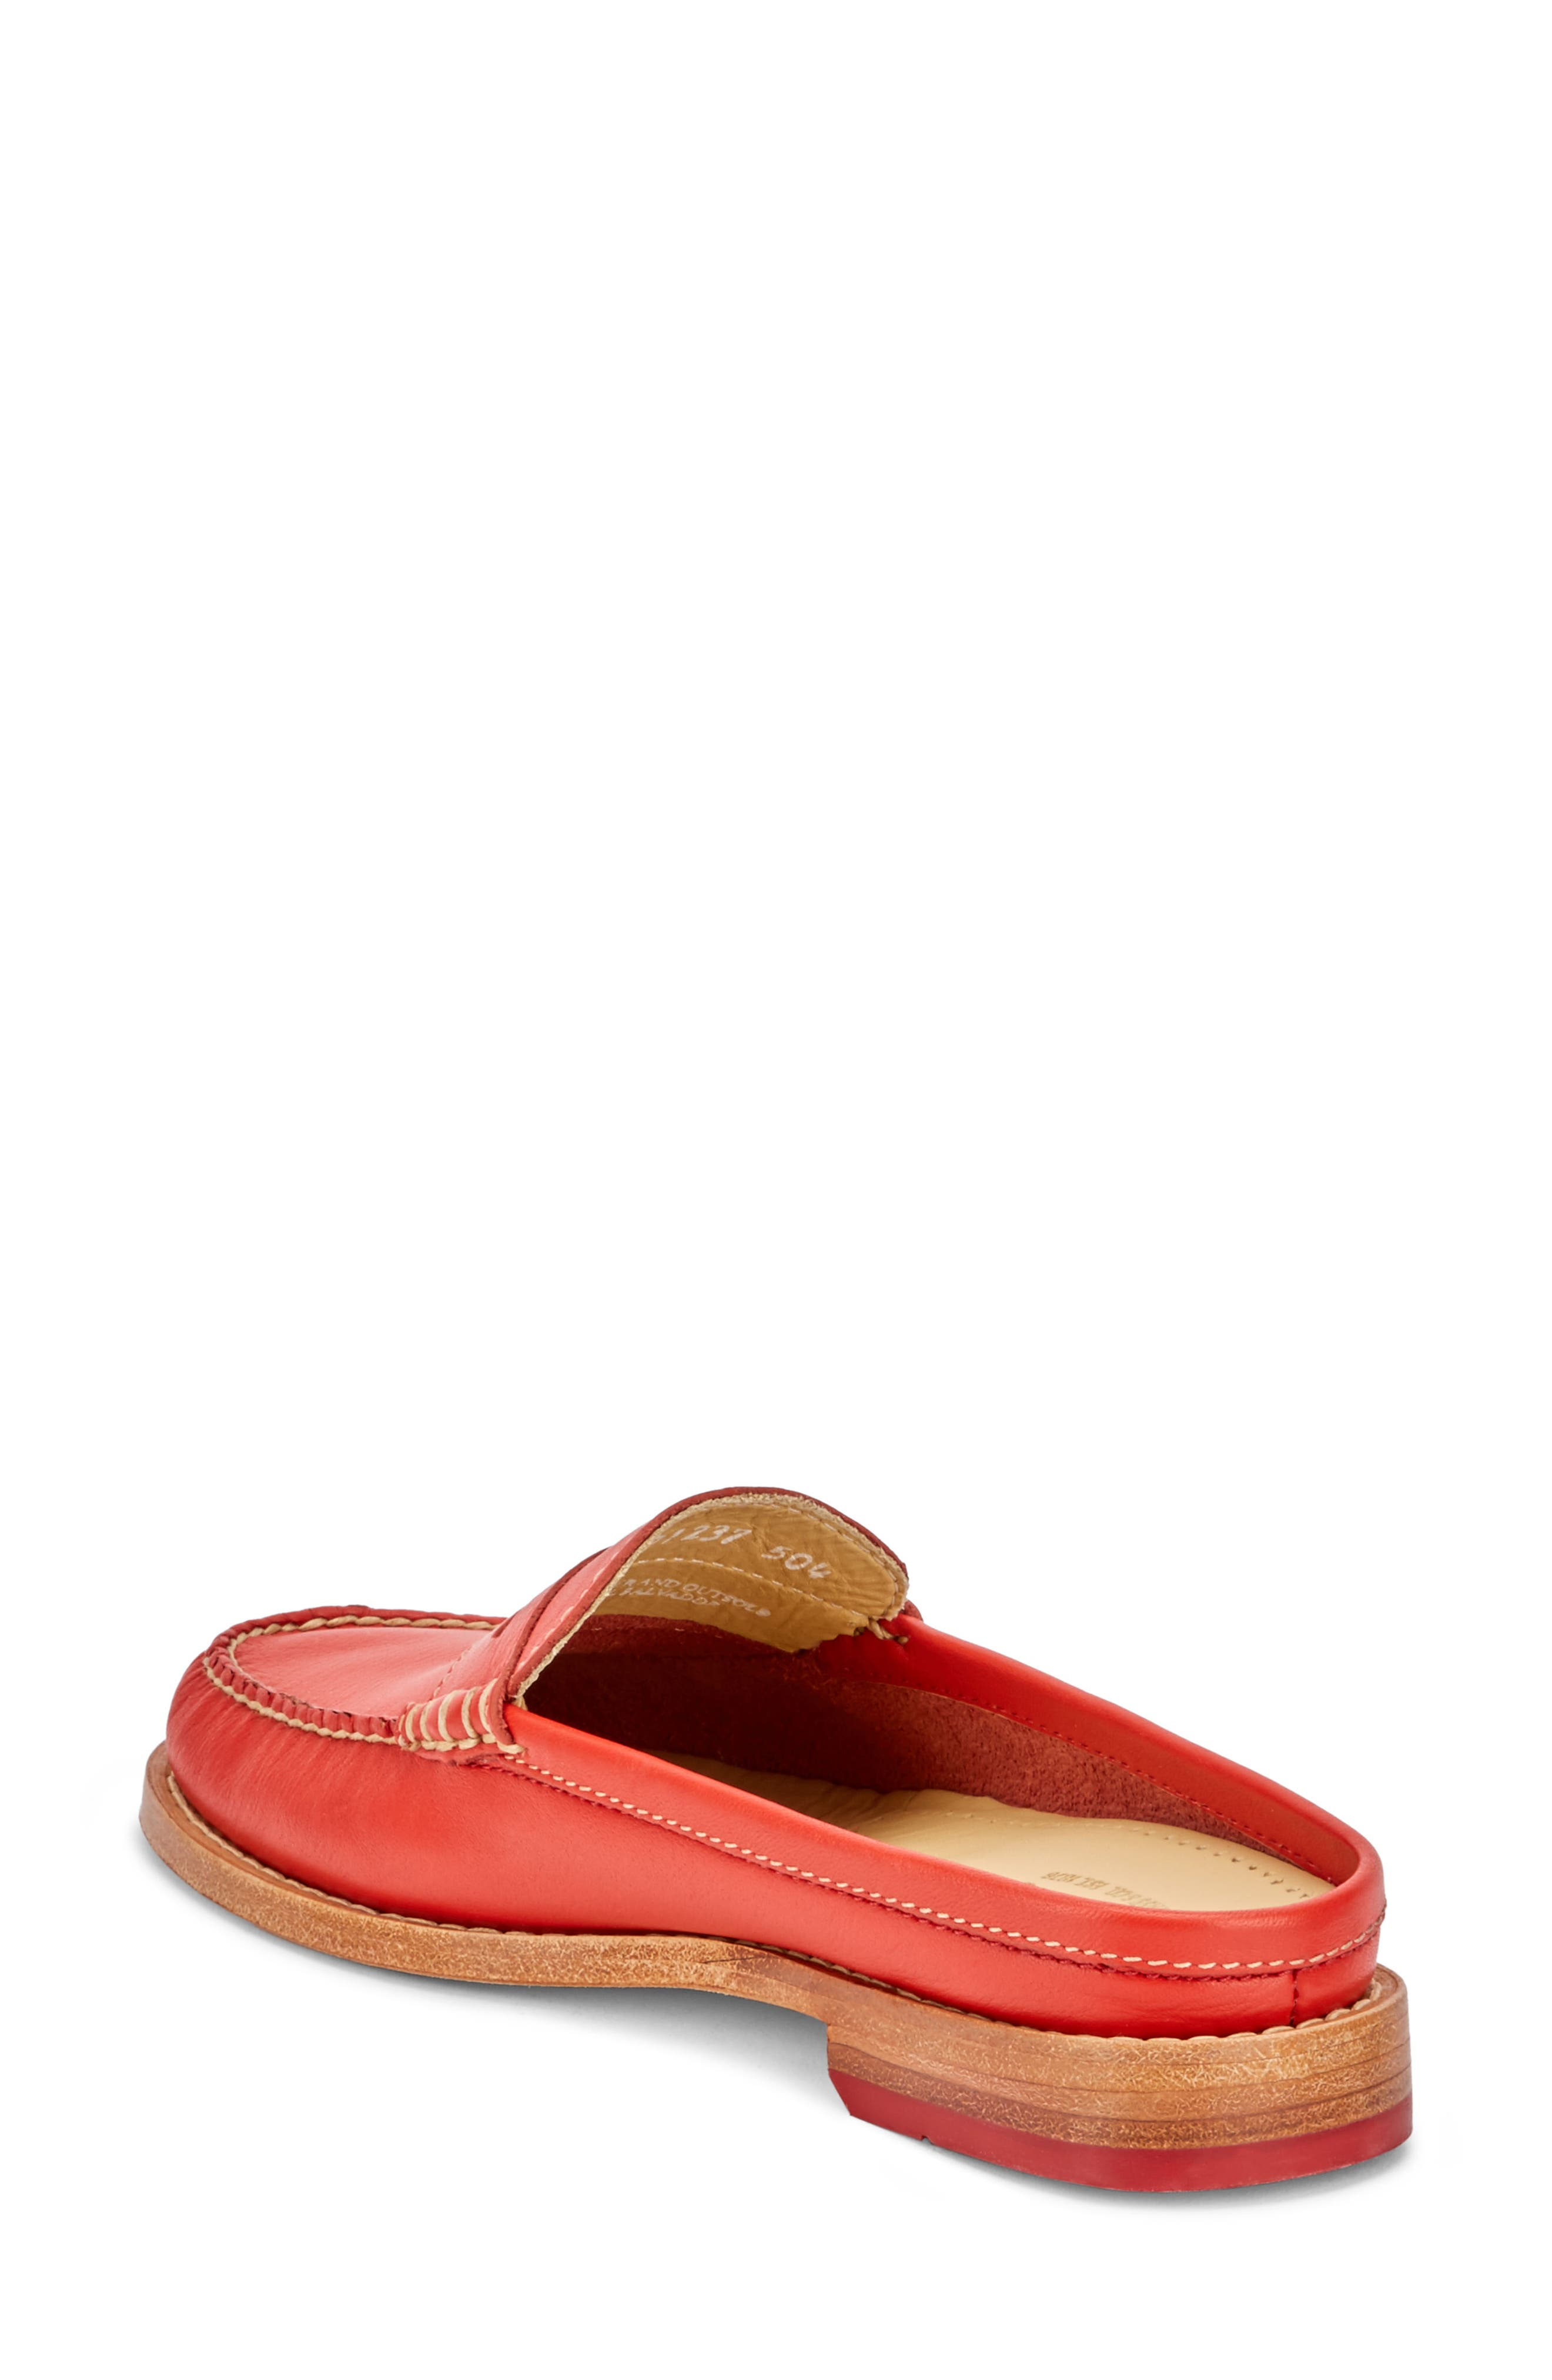 Wynn Loafer Mule,                             Alternate thumbnail 2, color,                             Roma Red Leather